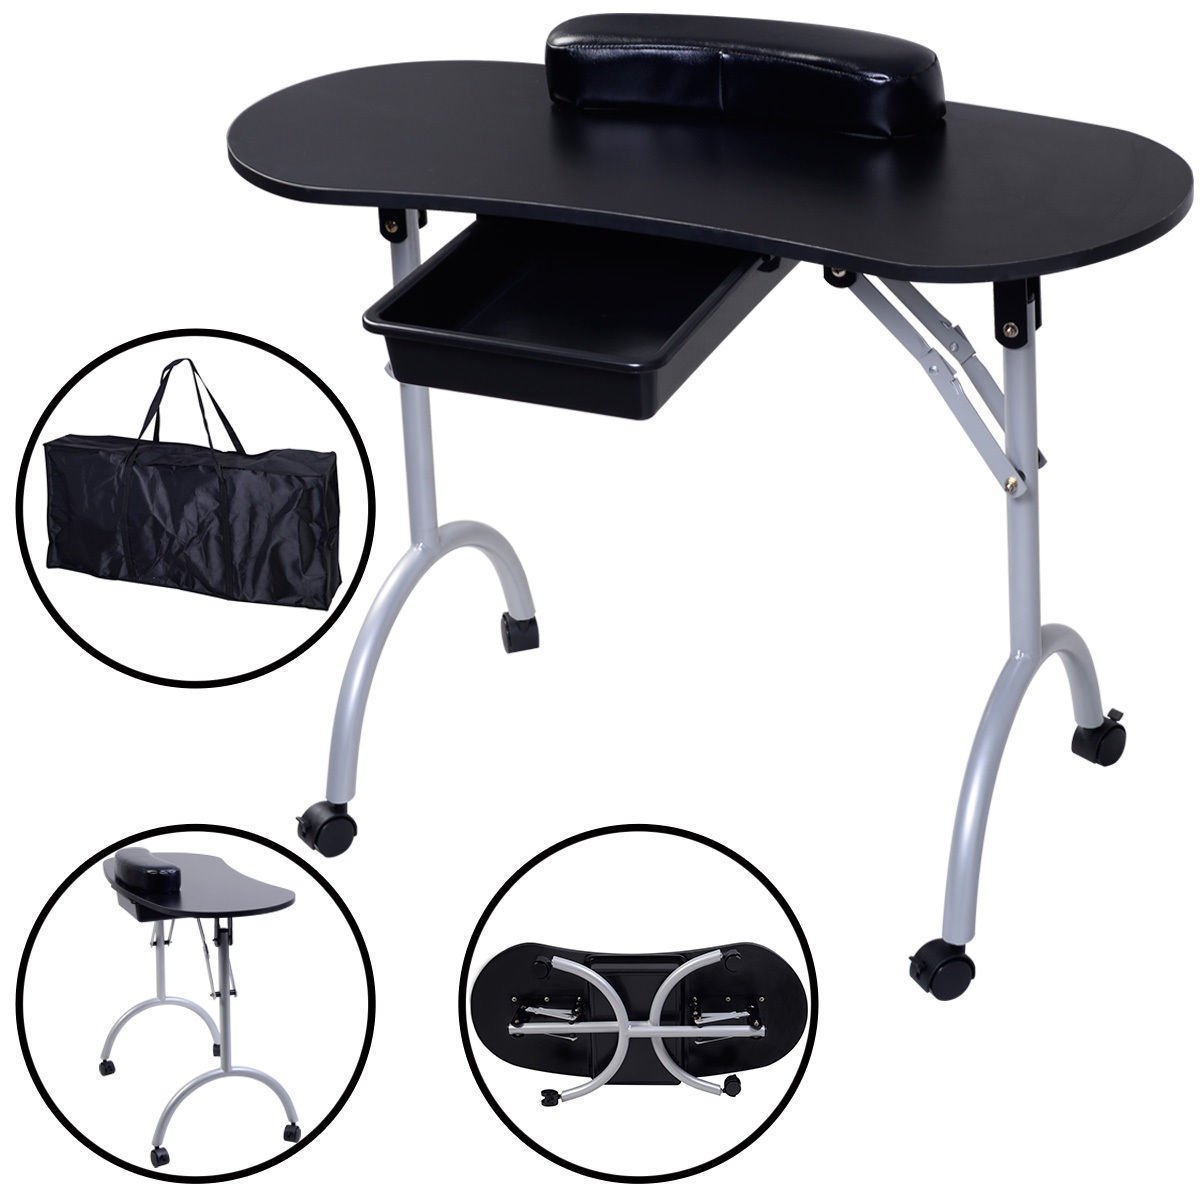 New Portable Manicure Nail Table Station Desk Spa Beauty Salon Equipment Black